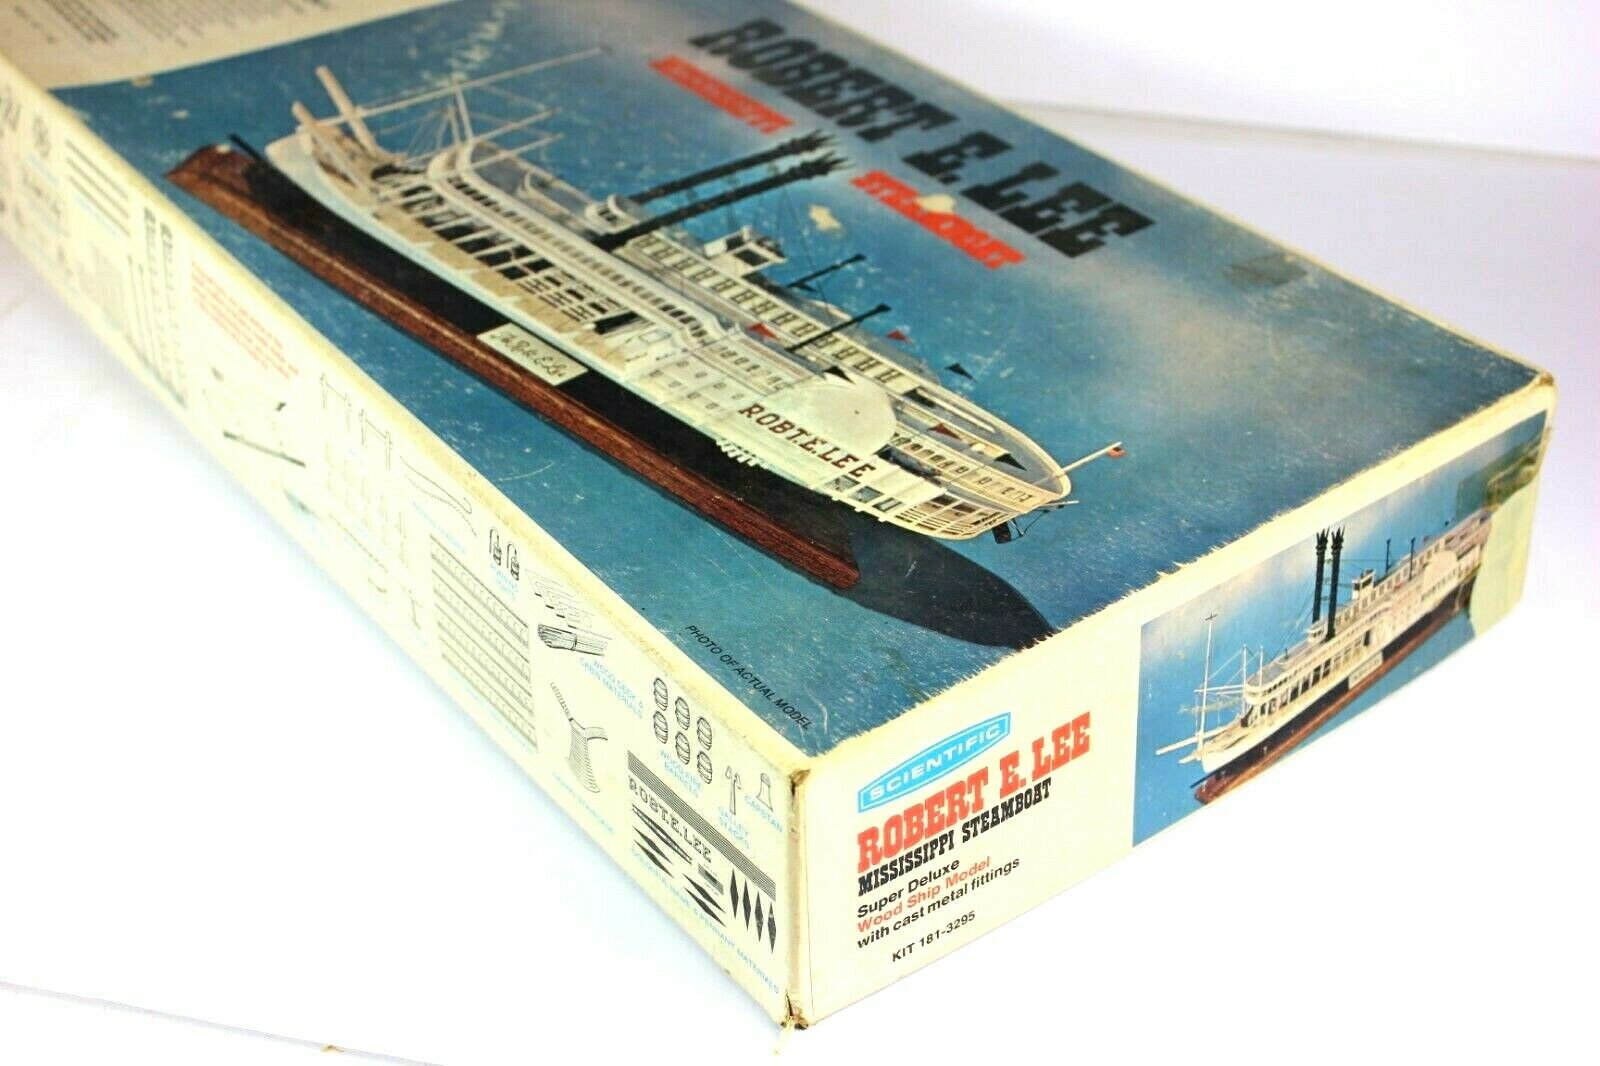 1972 Robert E. Lee - Mississippi Steamboat Wooden Model  Deluxe Kit Scientific